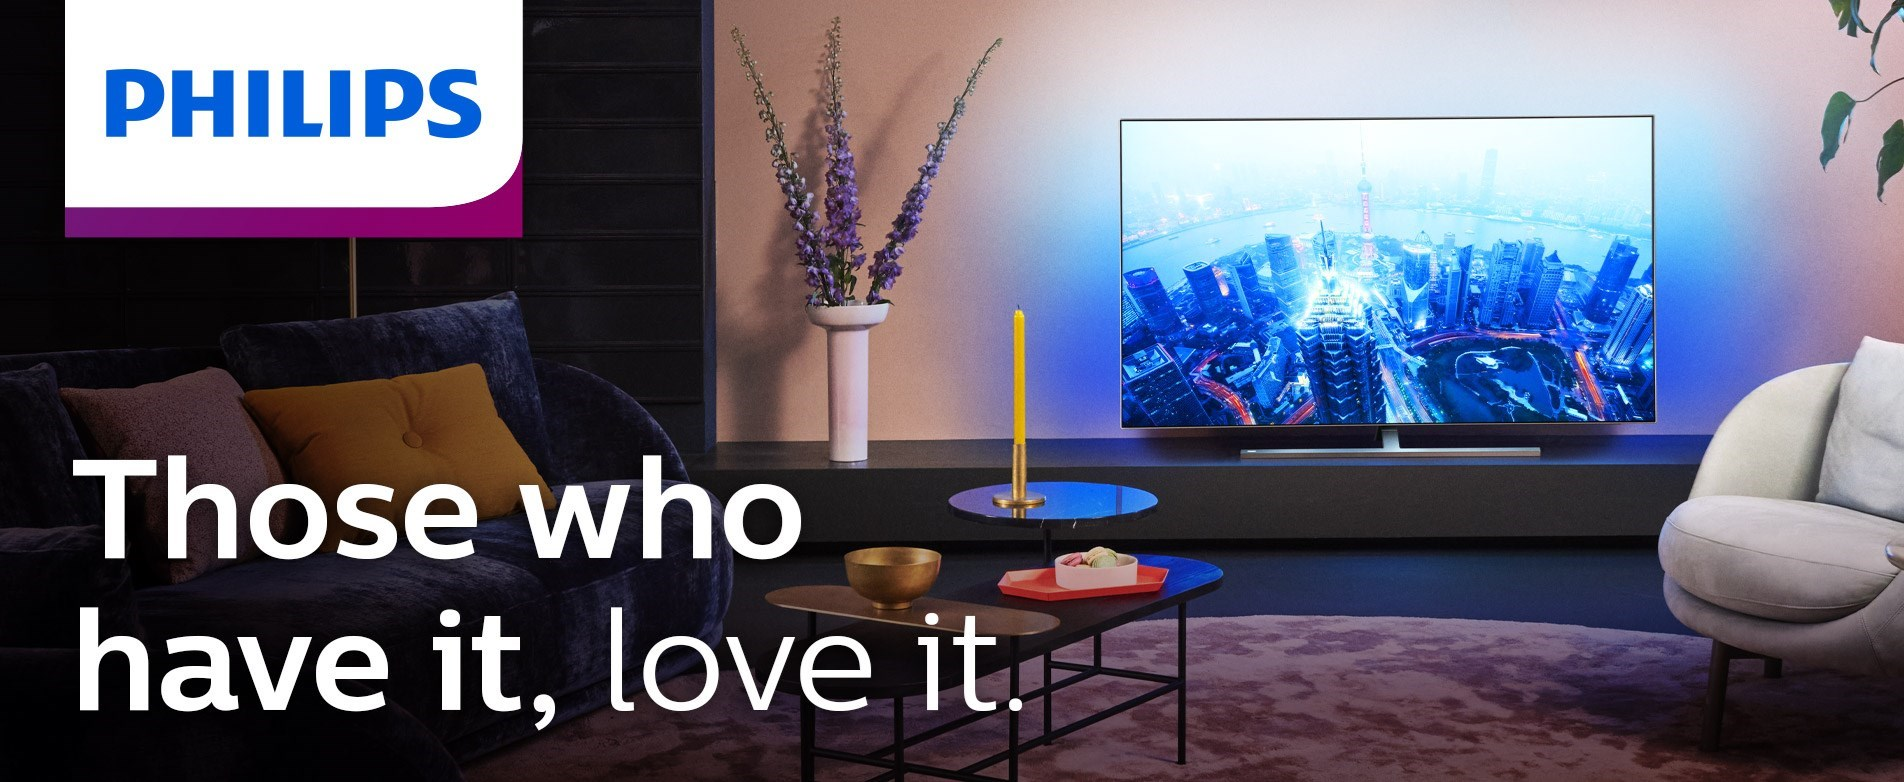 Philips TV – Those who have it, love it